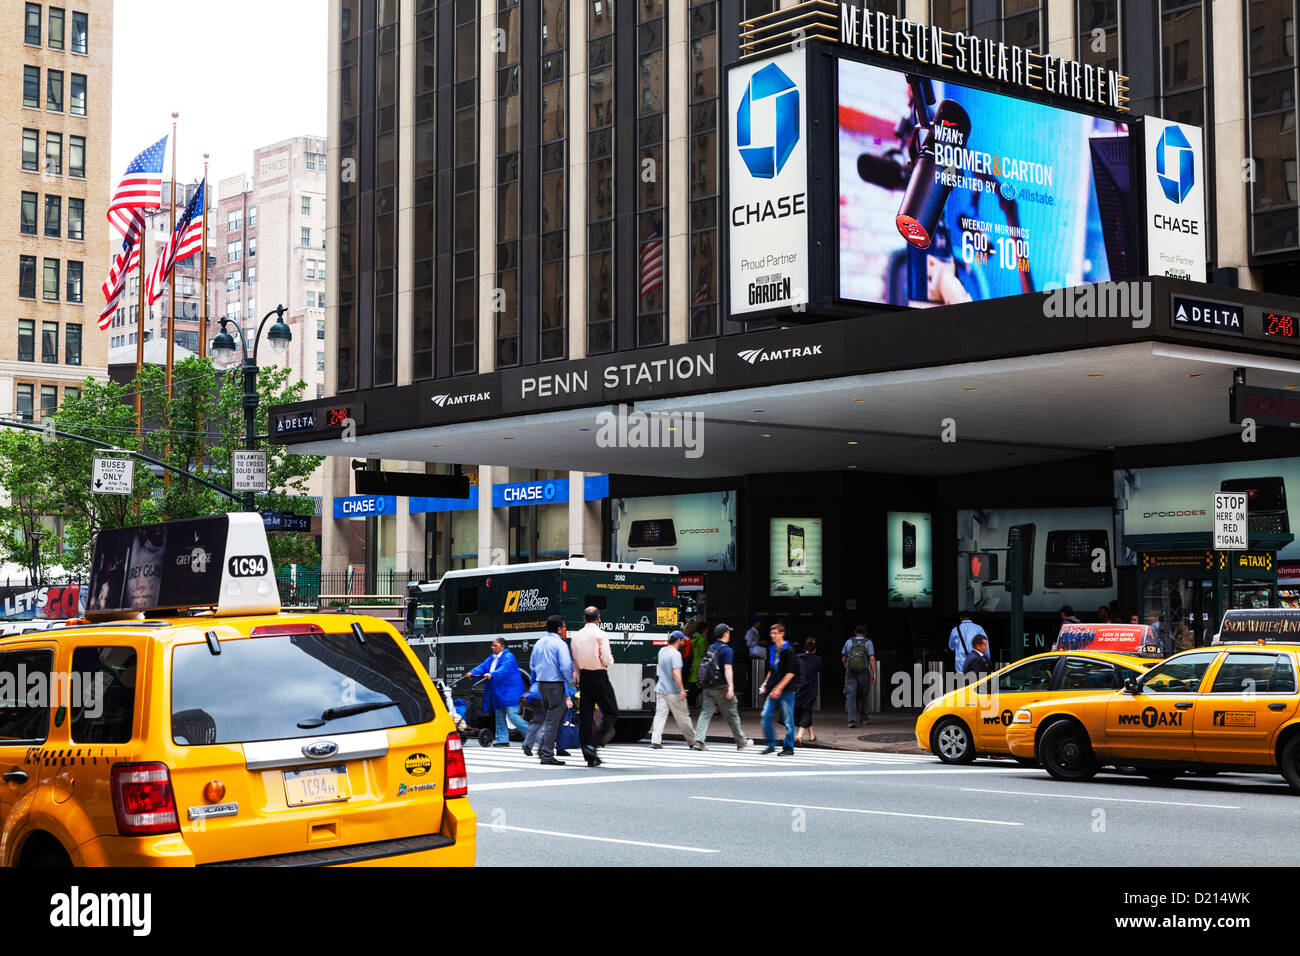 Outside Exterior Of Penn Station Madison Square Garden New York Stock Photo Royalty Free